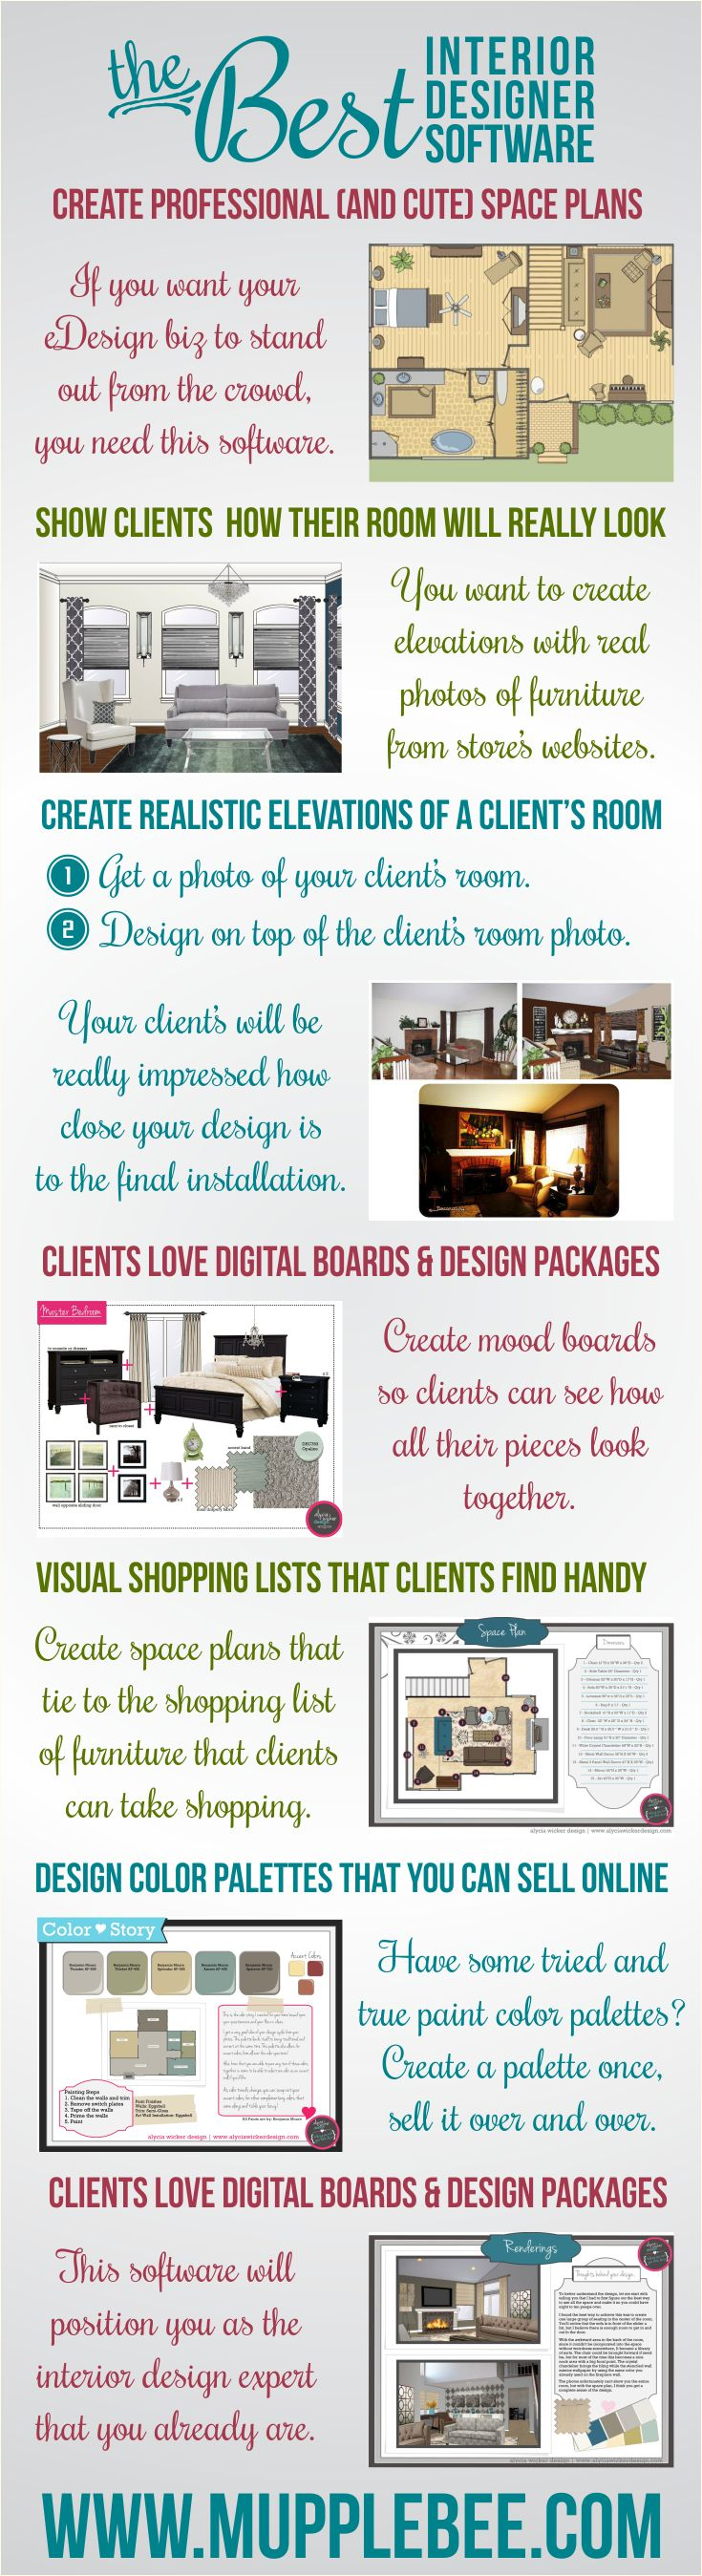 One of the best interior design software programs that you can use for your eDesign / eDecorating business. http://www.mupplebee.com/interior-design-software-for-the-coolest-interior-designers/                                                                                                                                                                                 More